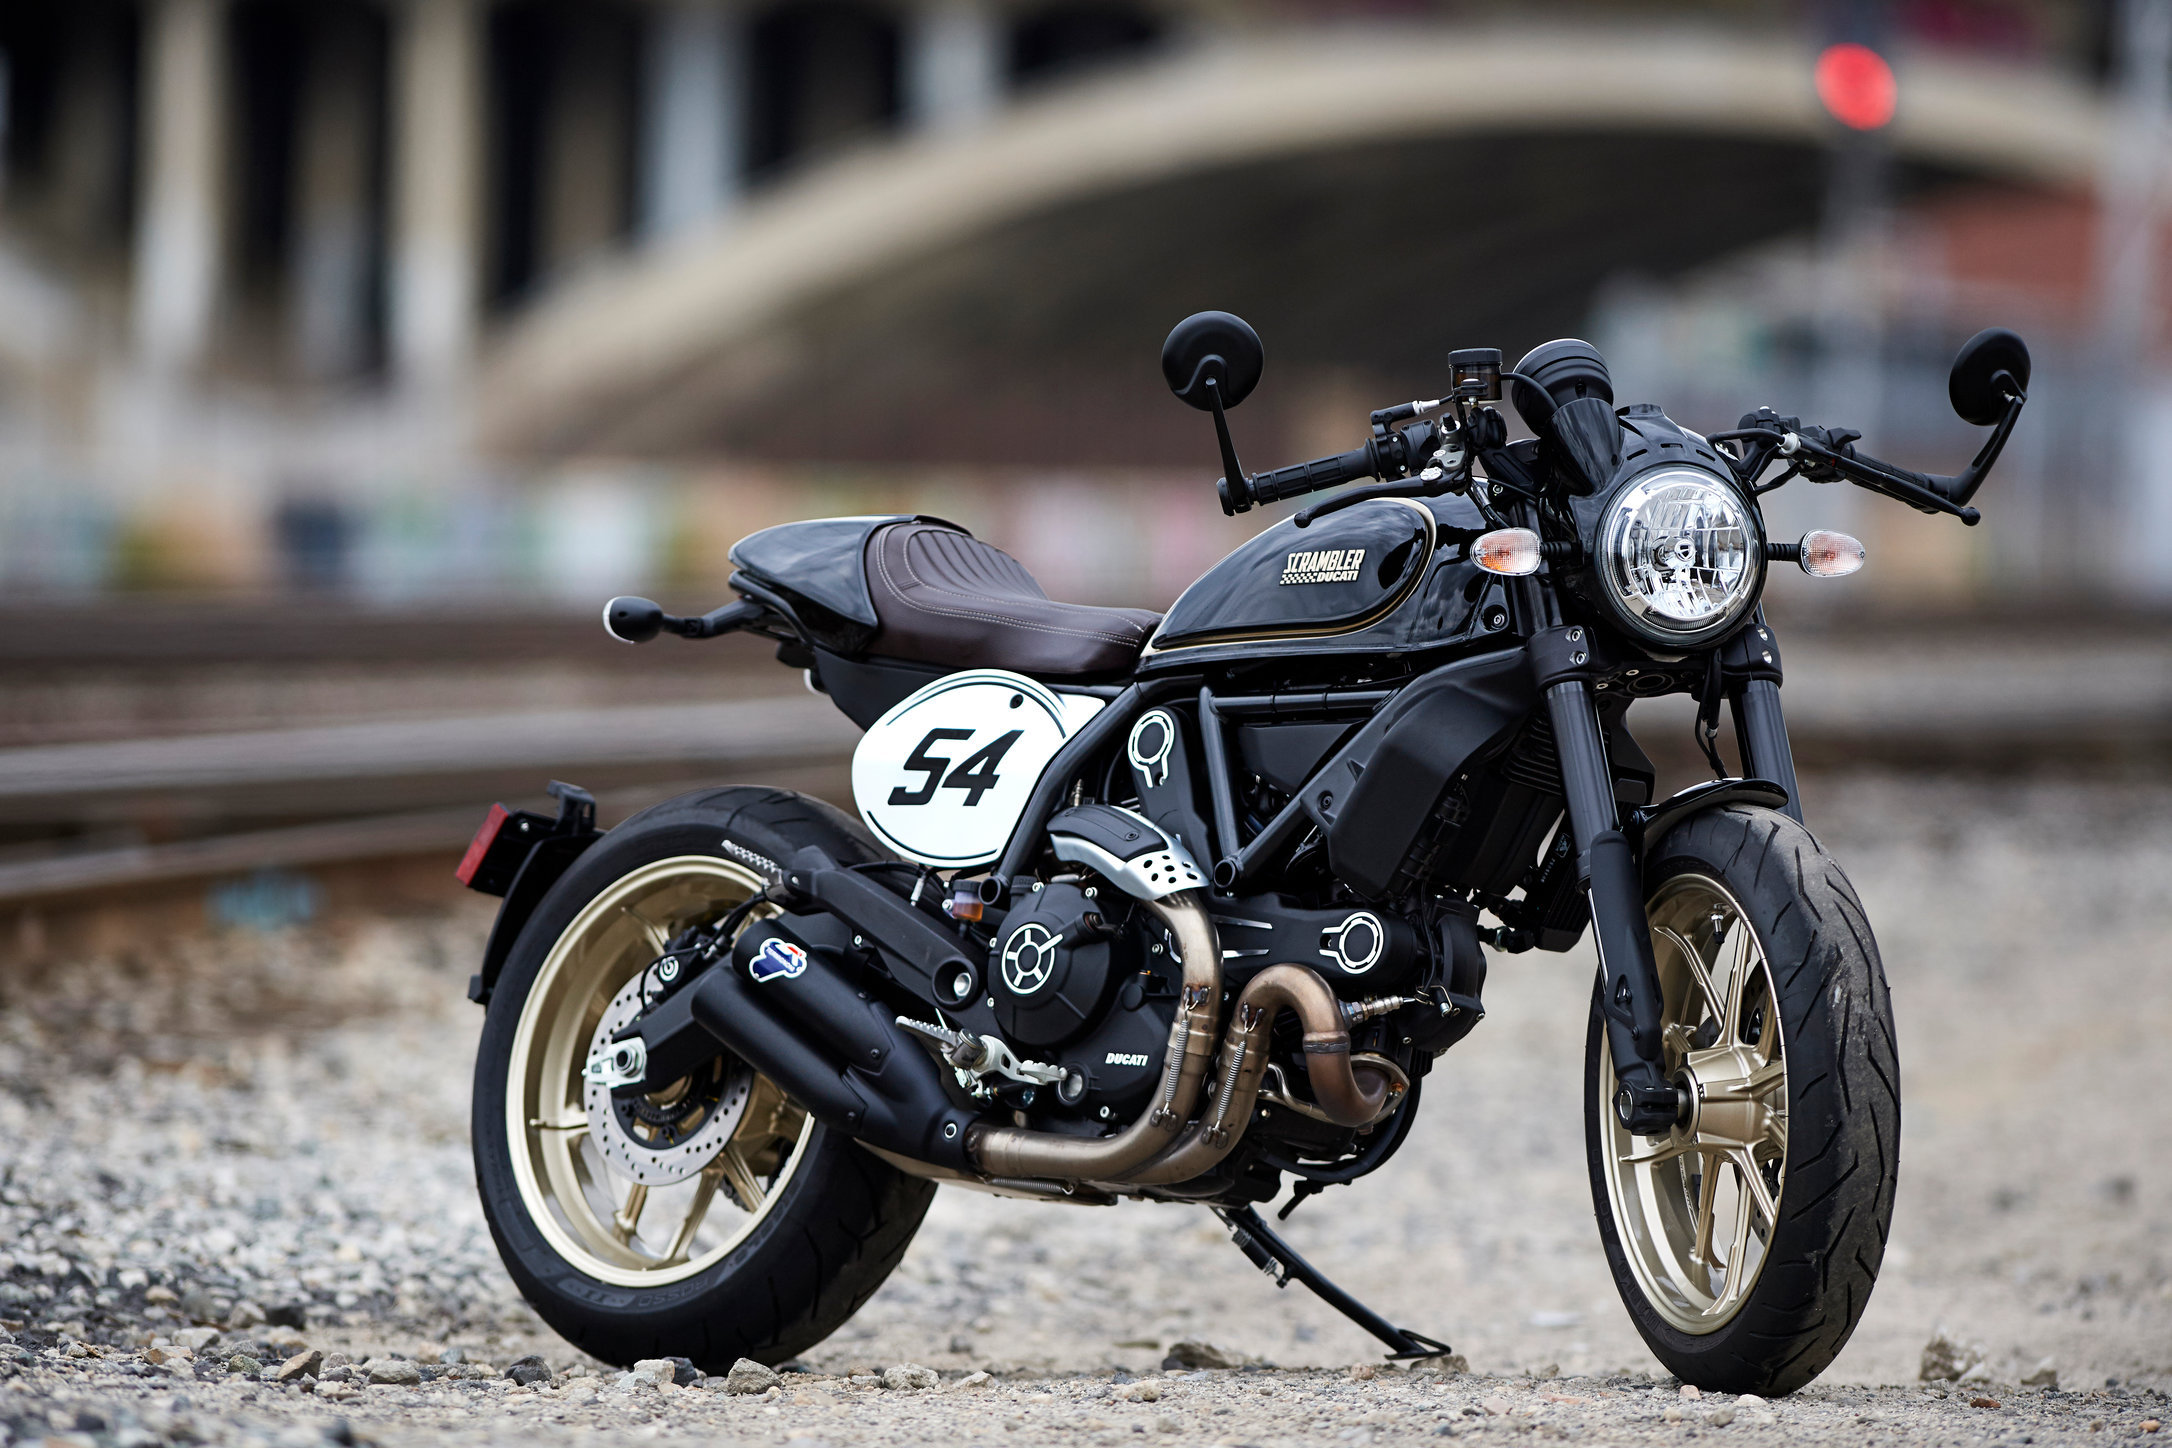 Motorcycle_DucatiScrambler_HERO_Outside_5510.jpg